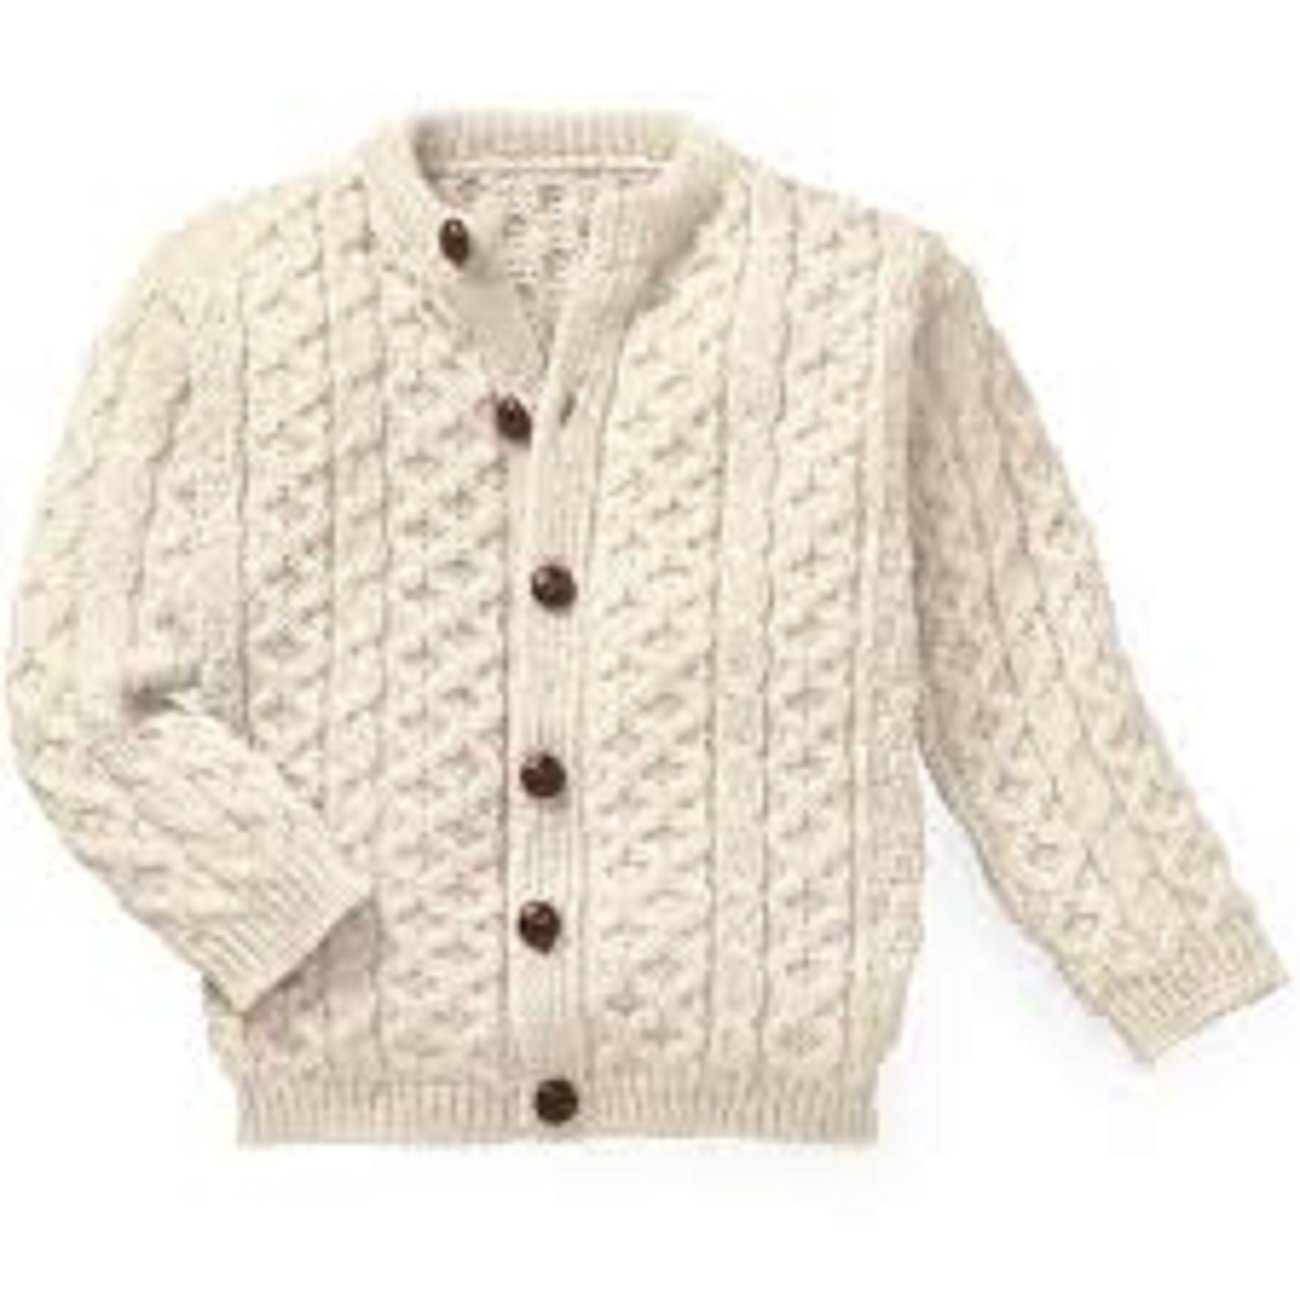 Made in the UK Kids Arran New Wool Cardigan Age 11-13